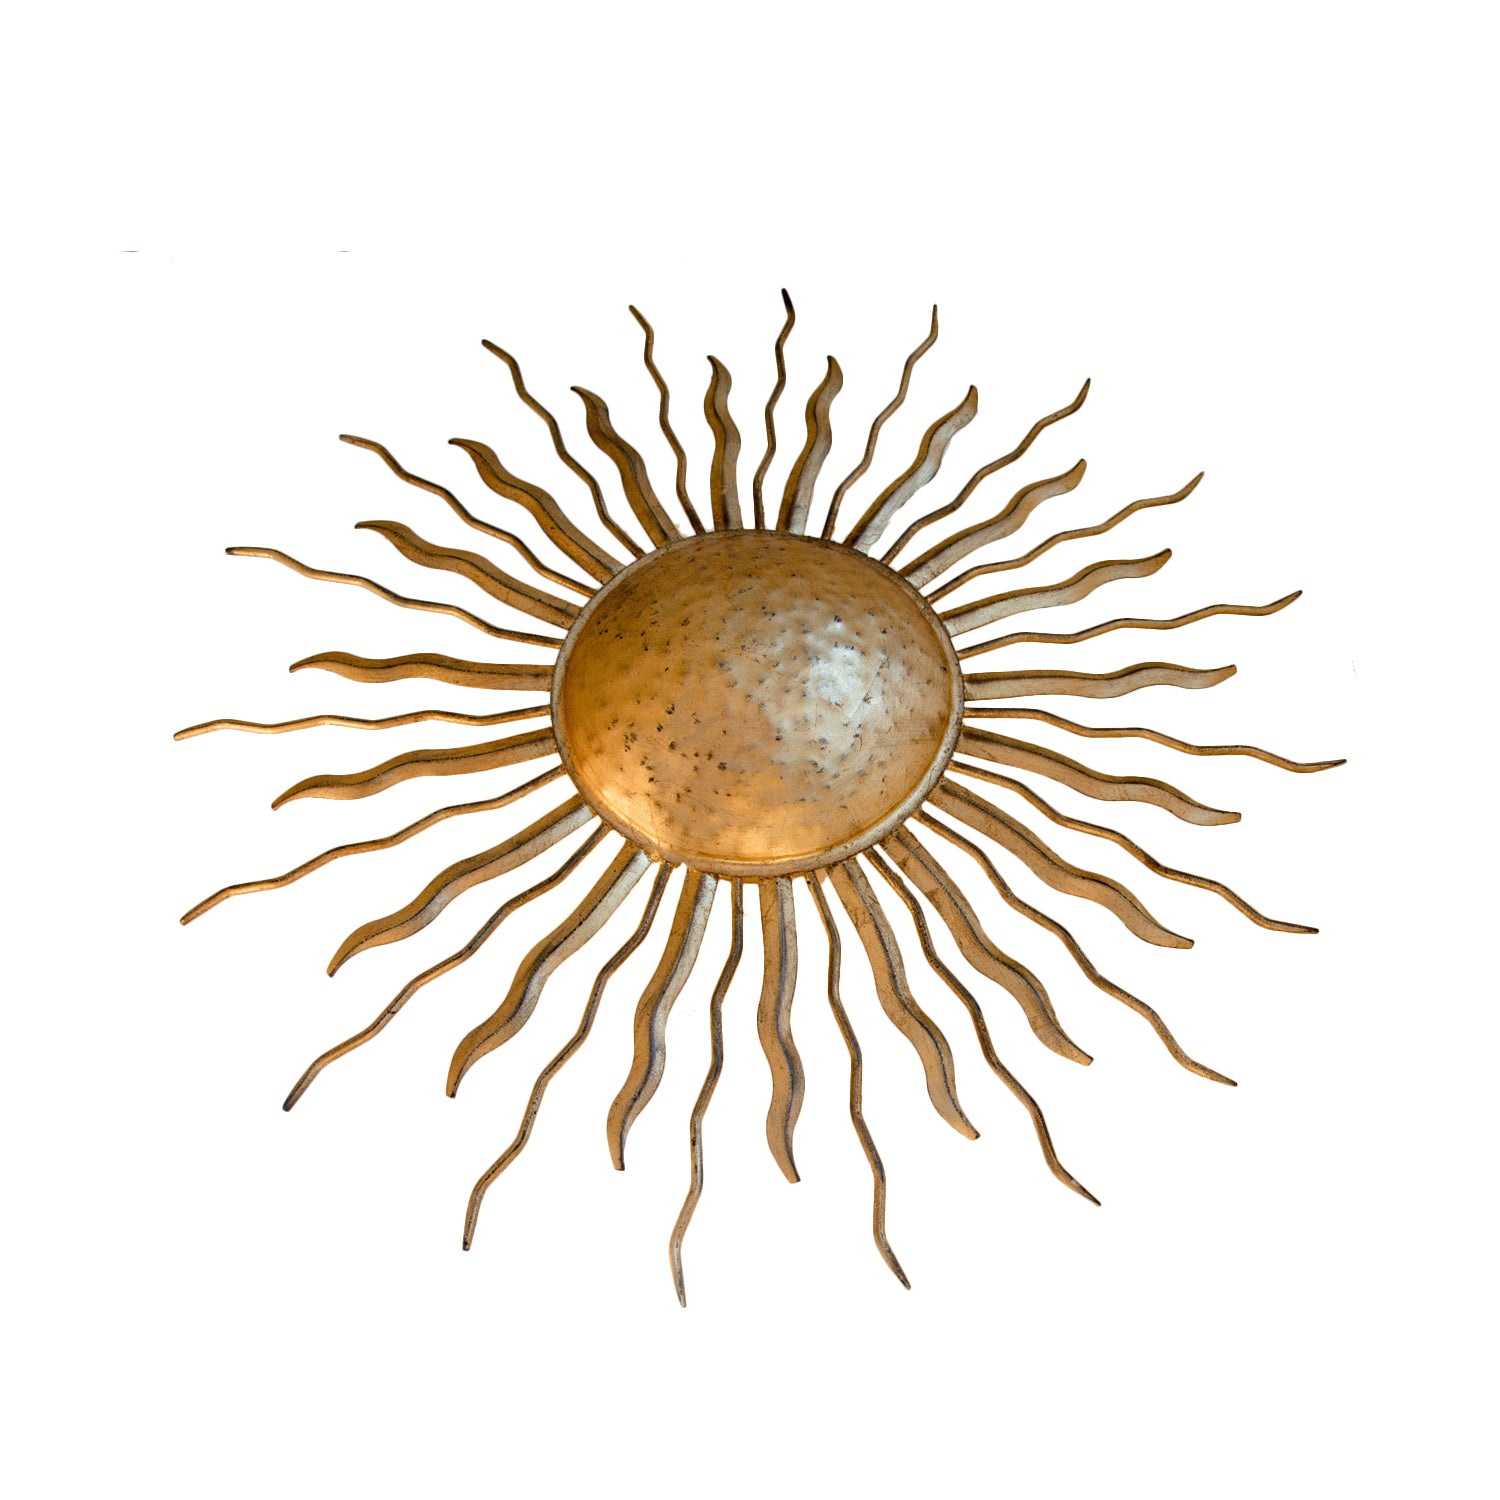 Ré Flush Mount by Suzanne Kasler for Visual Comfort & Co. in Gilded Iron with Wax.